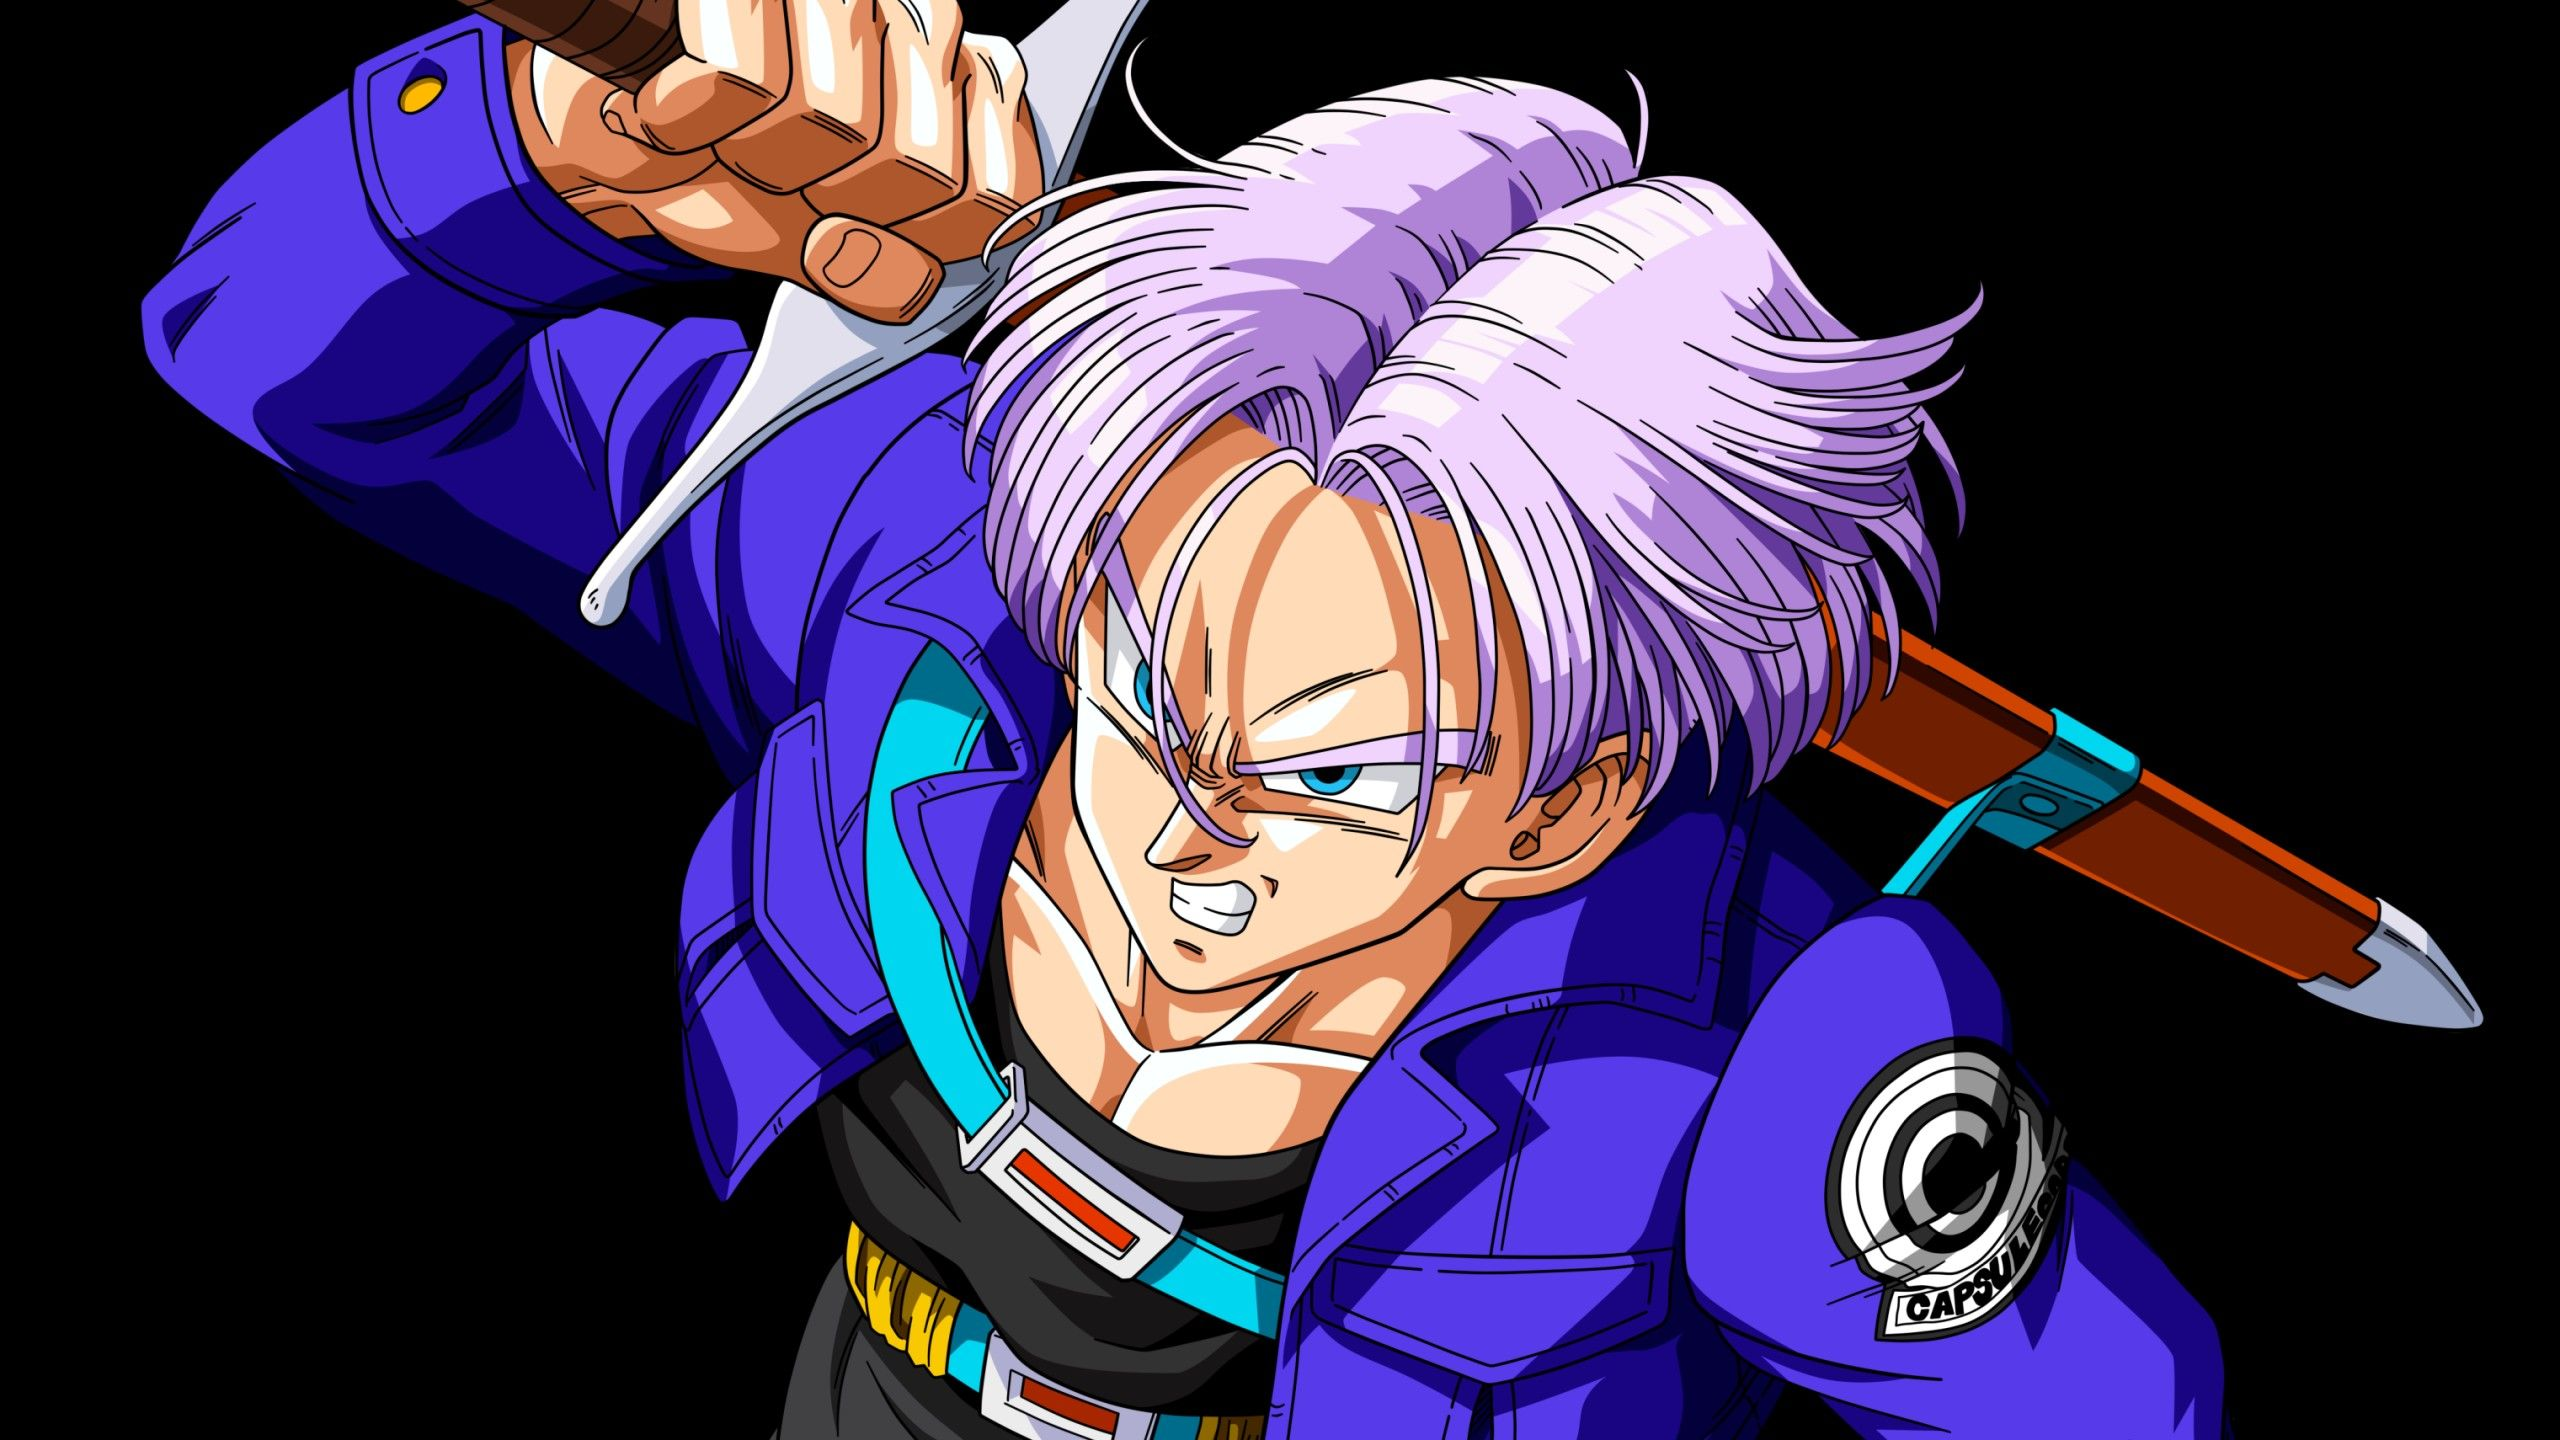 Dragon Ball Super Trunks Wallpapers Top Free Dragon Ball Super Trunks Backgrounds Wallpaperaccess